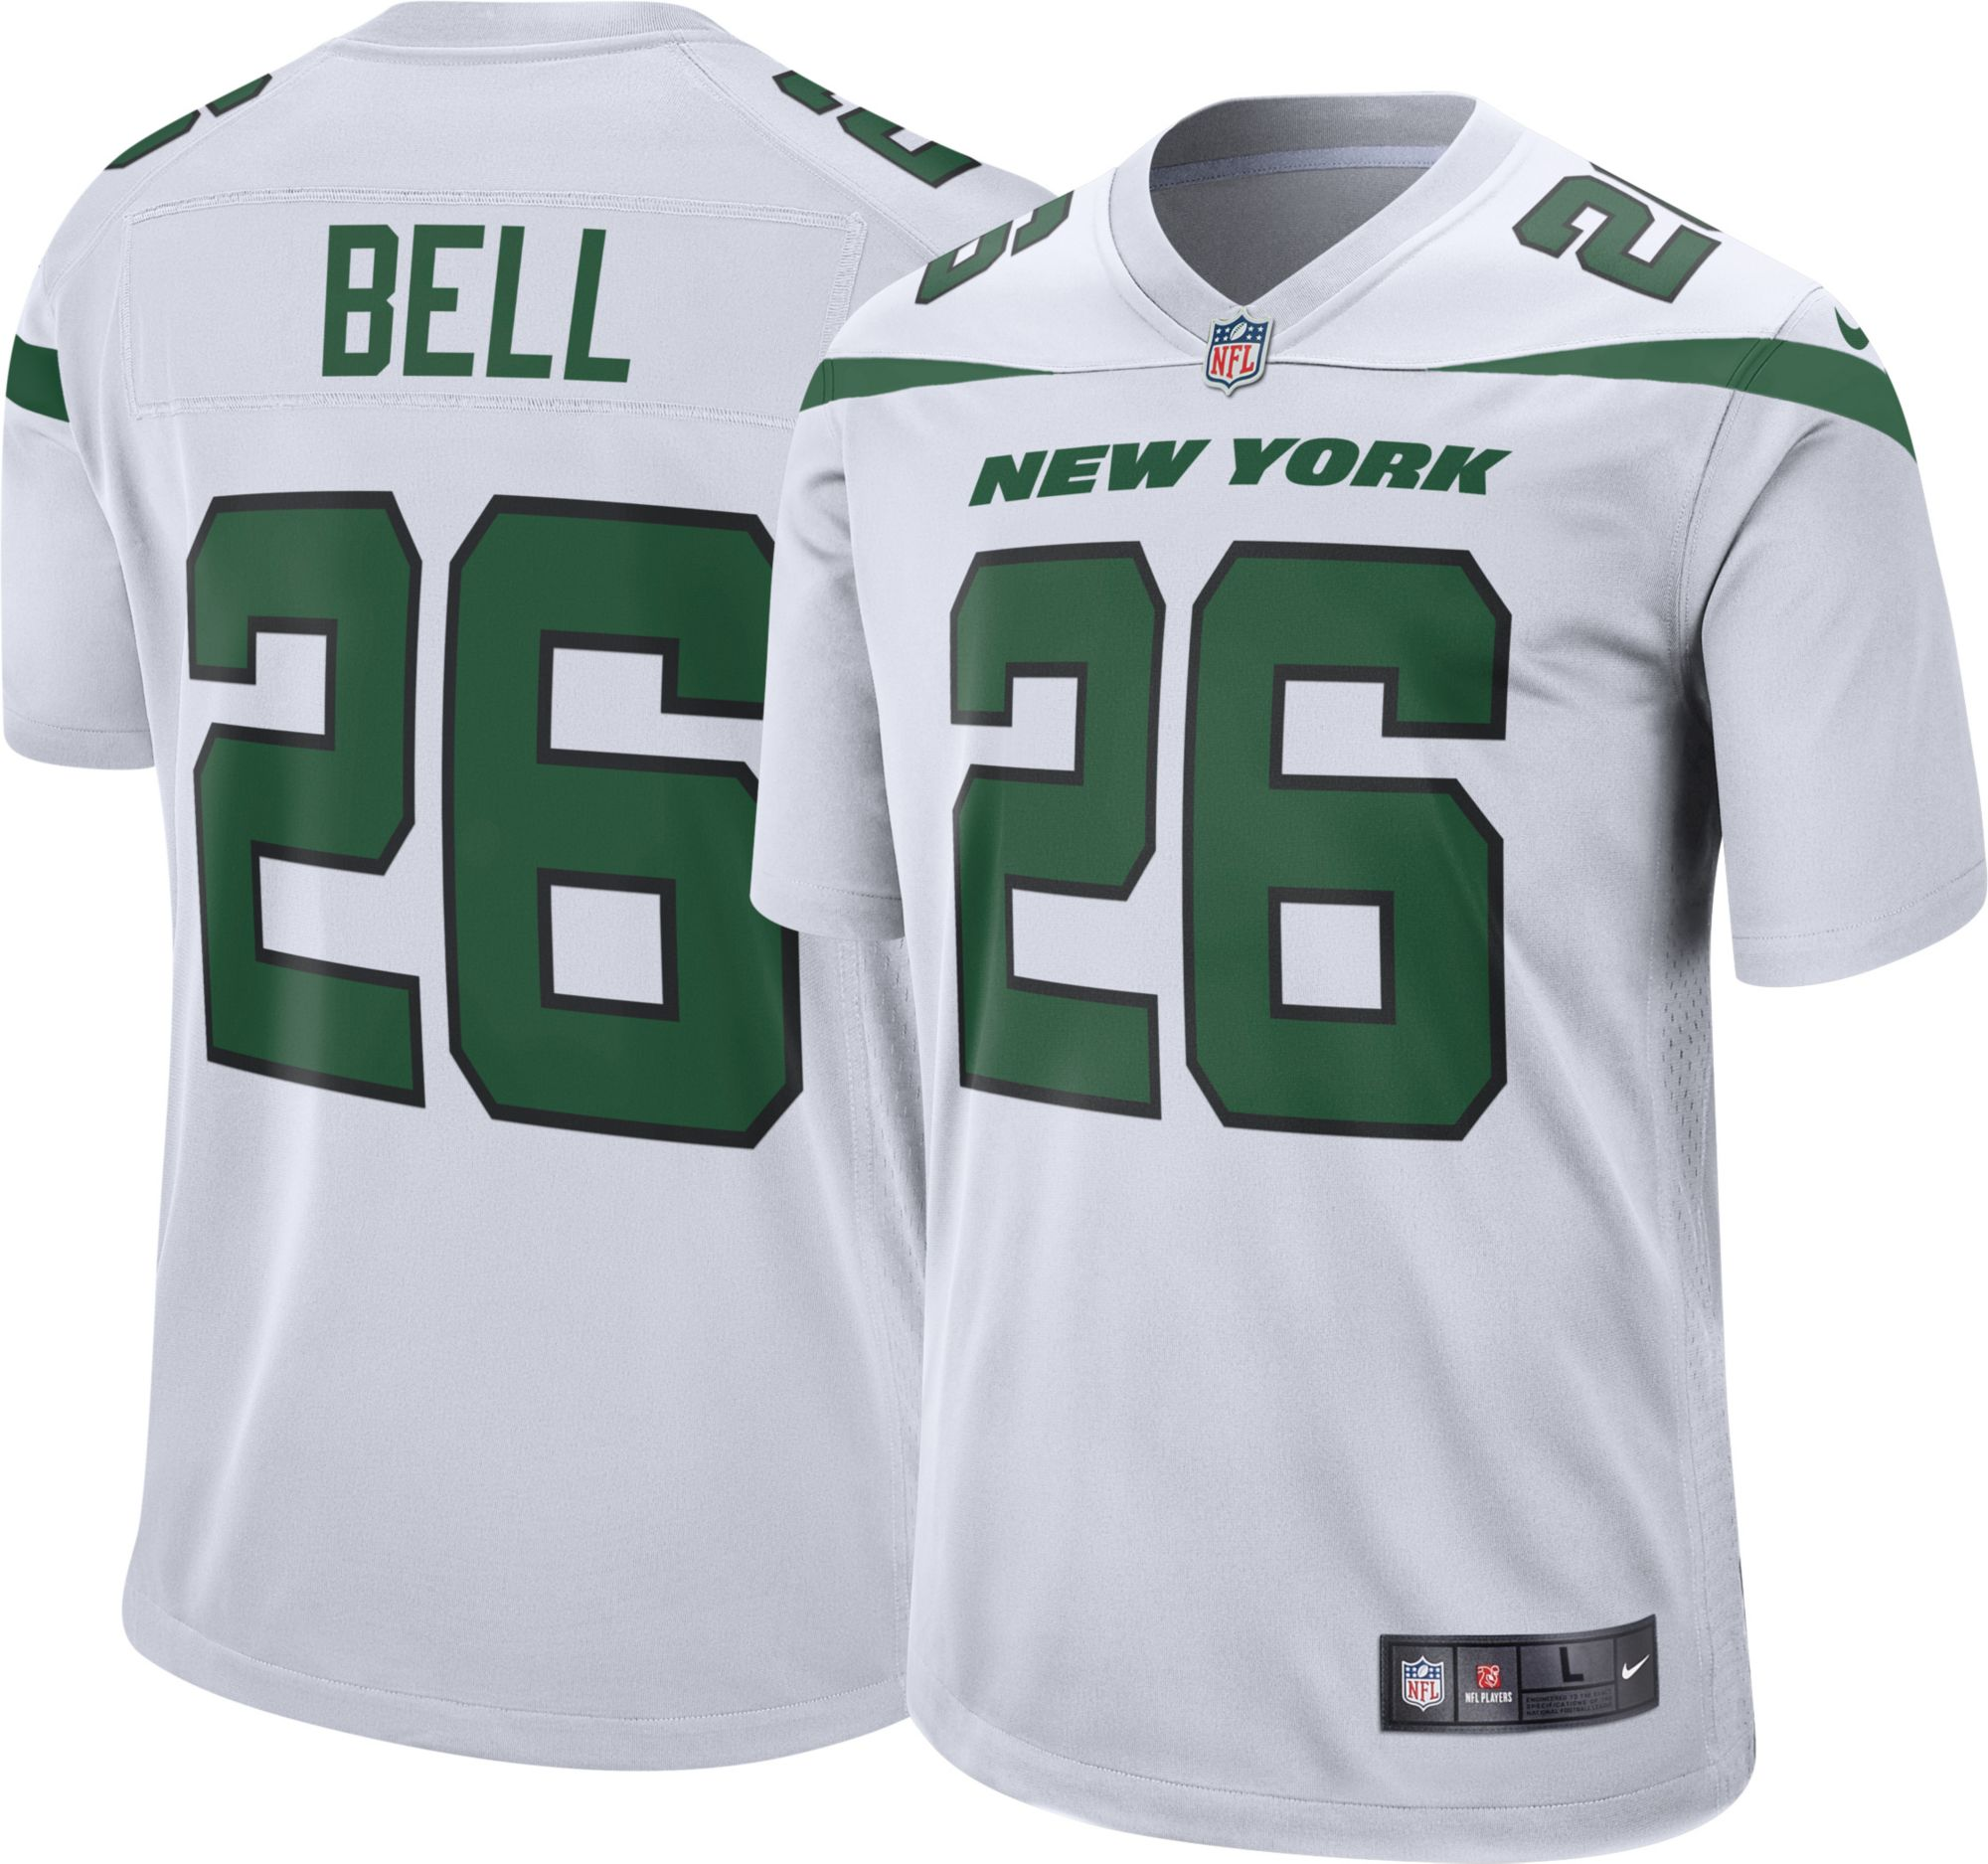 new york jets away jersey